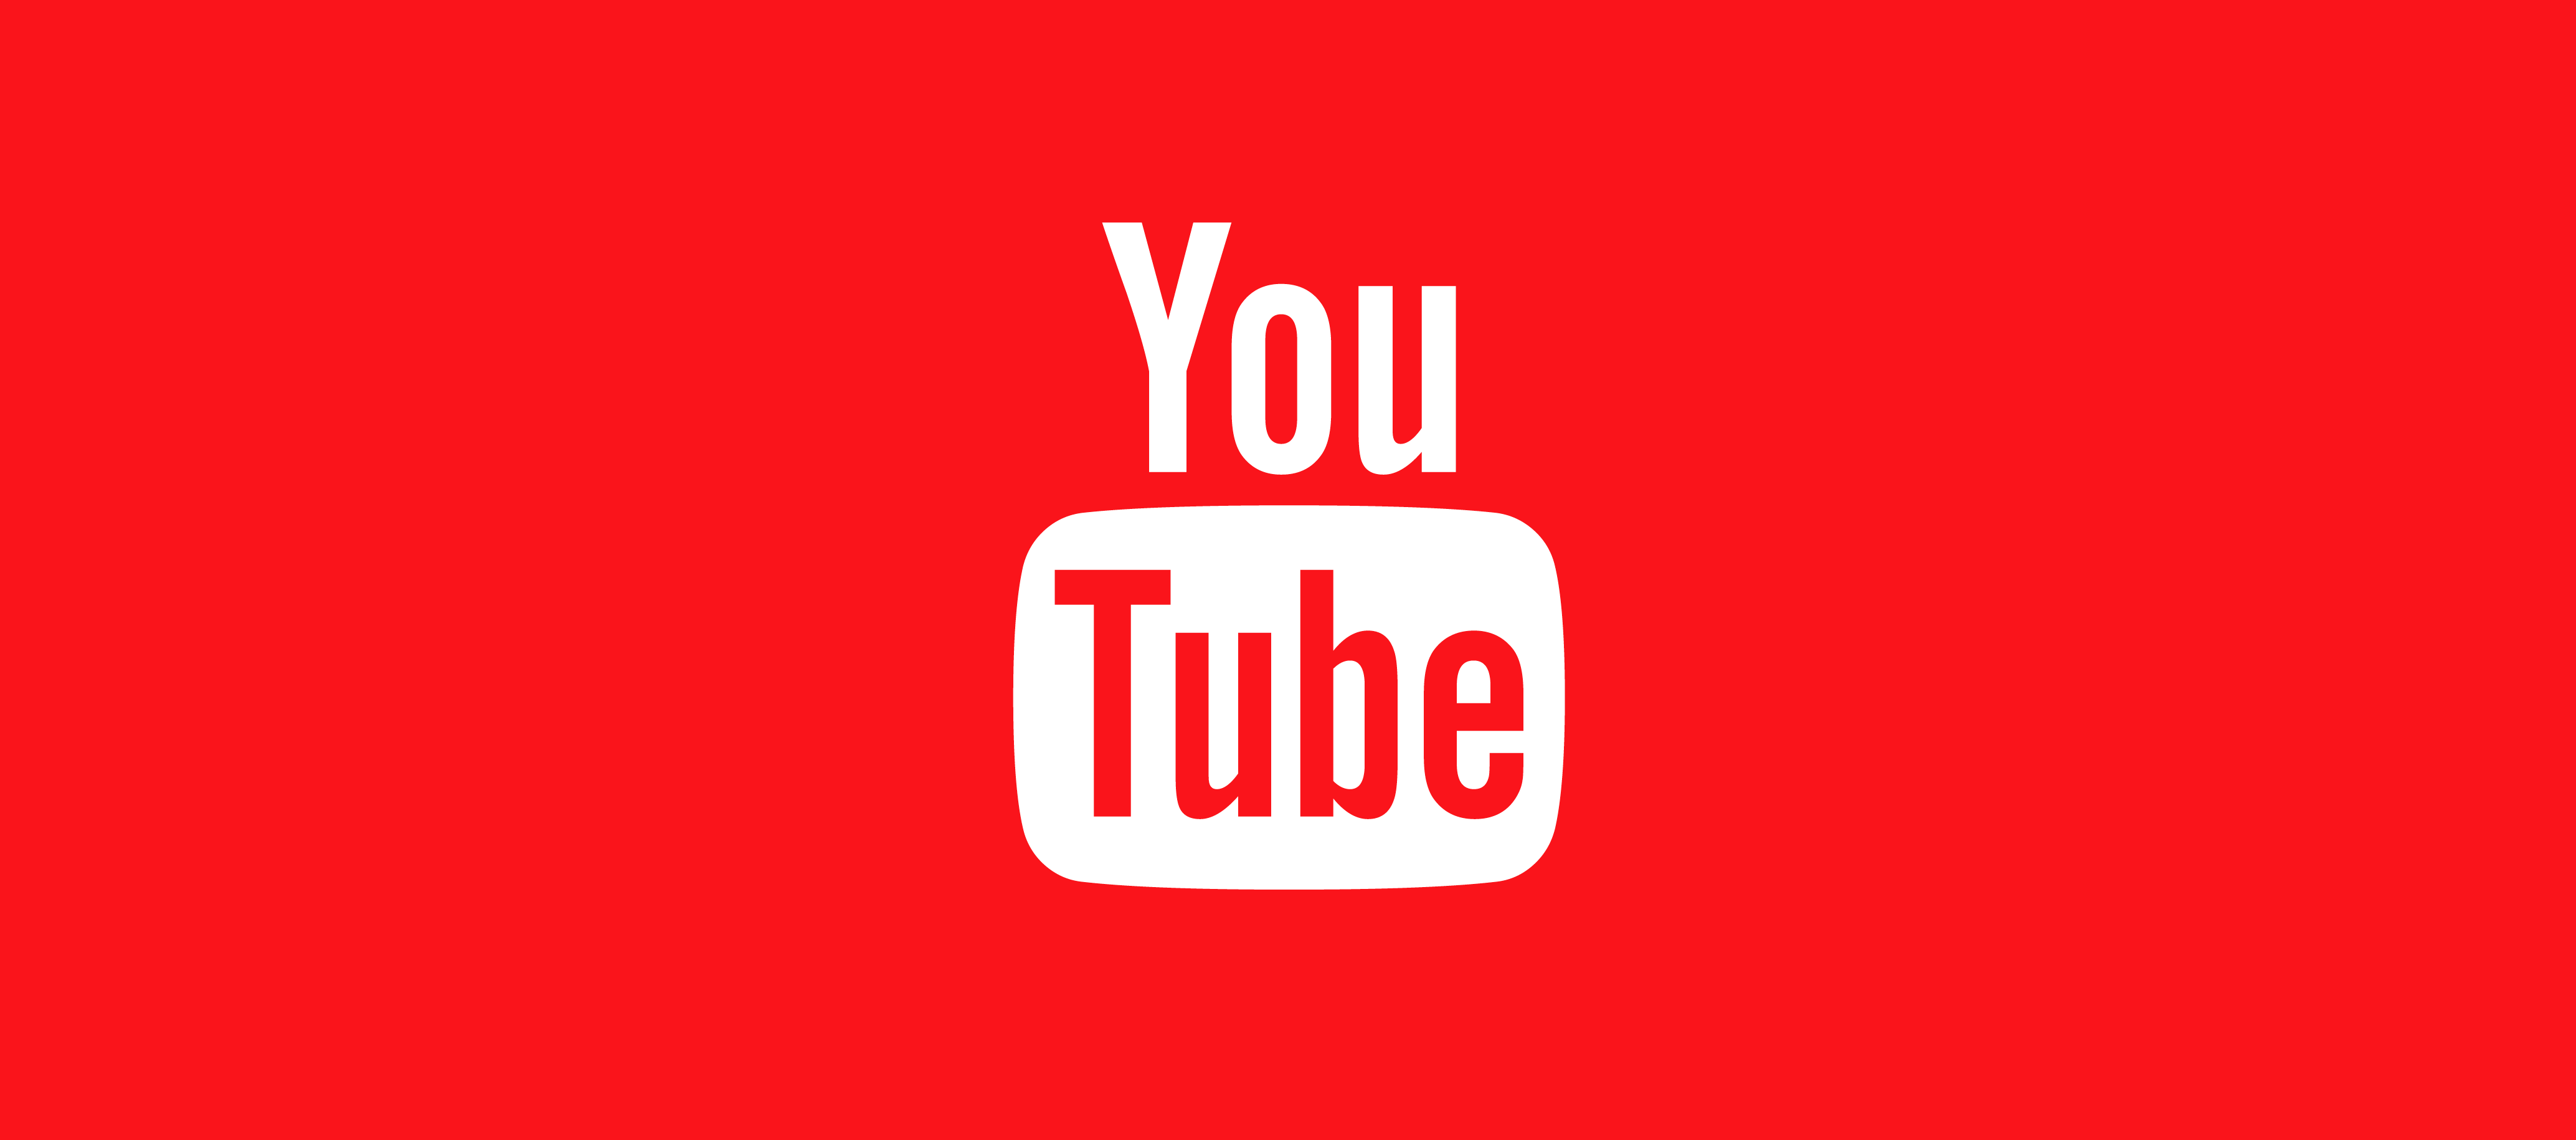 Youtube Ben Hanlin